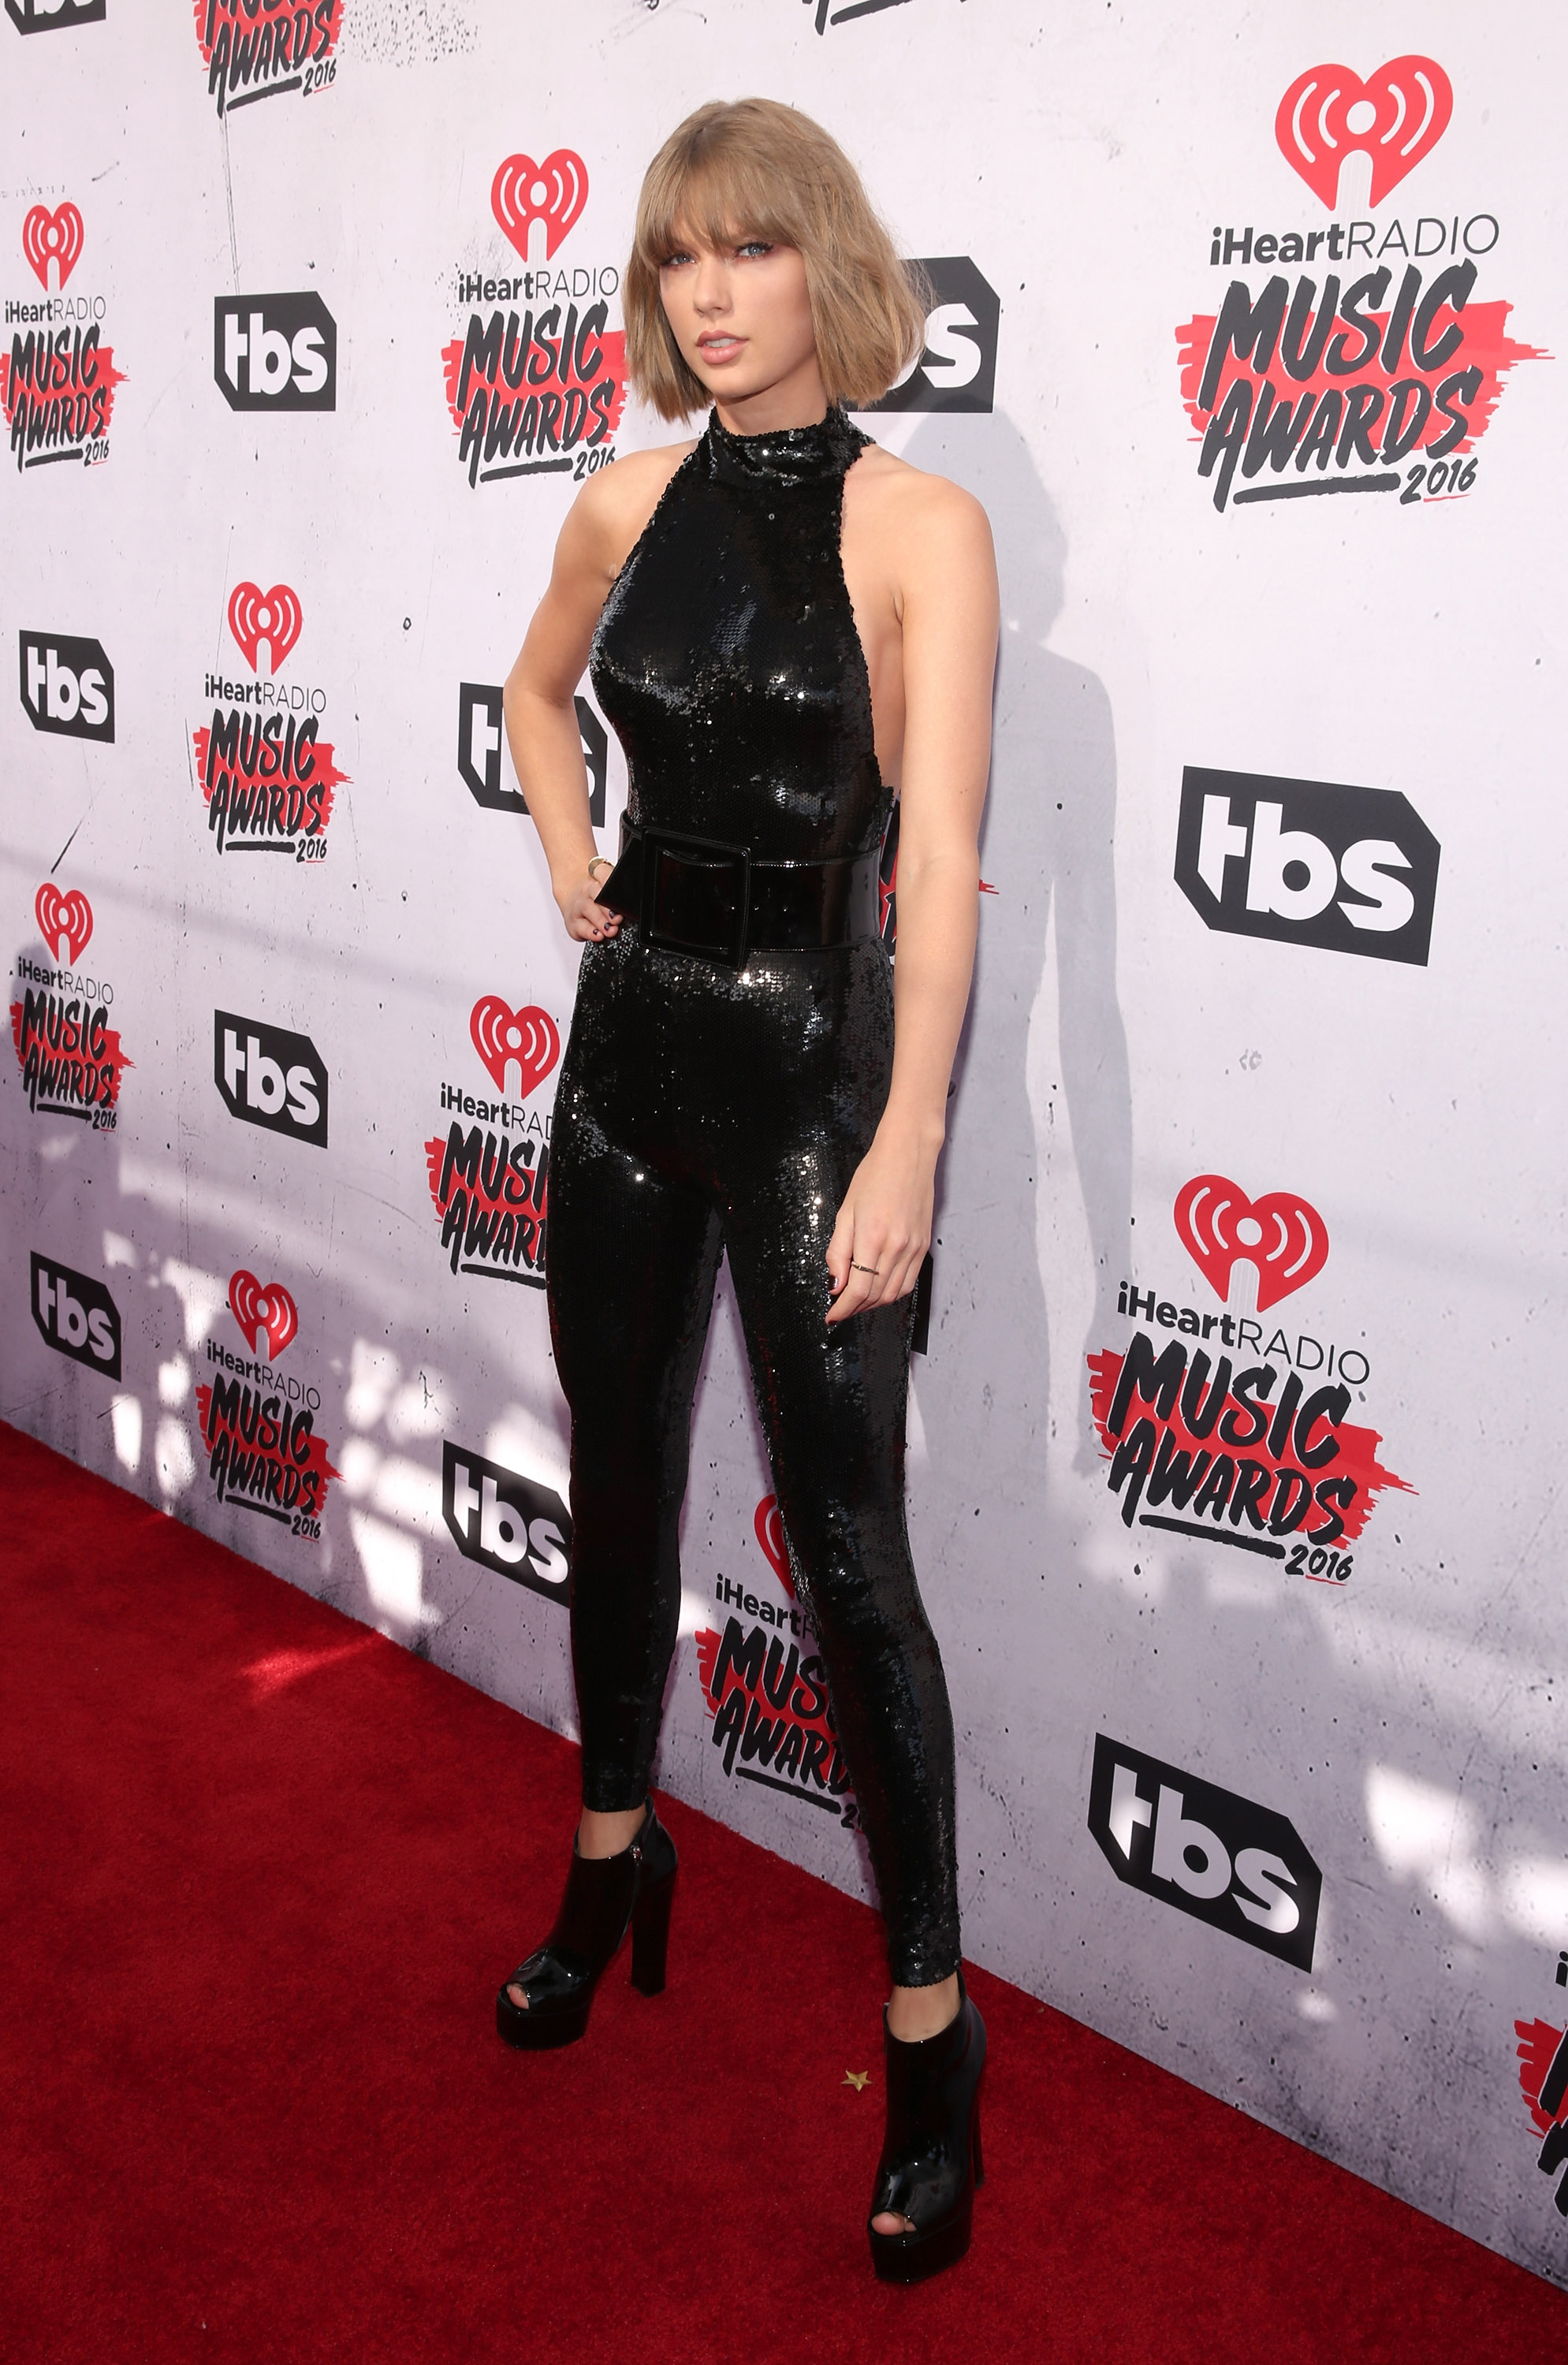 INGLEWOOD, CALIFORNIA - APRIL 03: Taylor Swift attends the iHeartRadio Music Awards at the Forum on April 3, 2016 in Inglewood, California. (Photo by Todd Williamson/Getty Images)